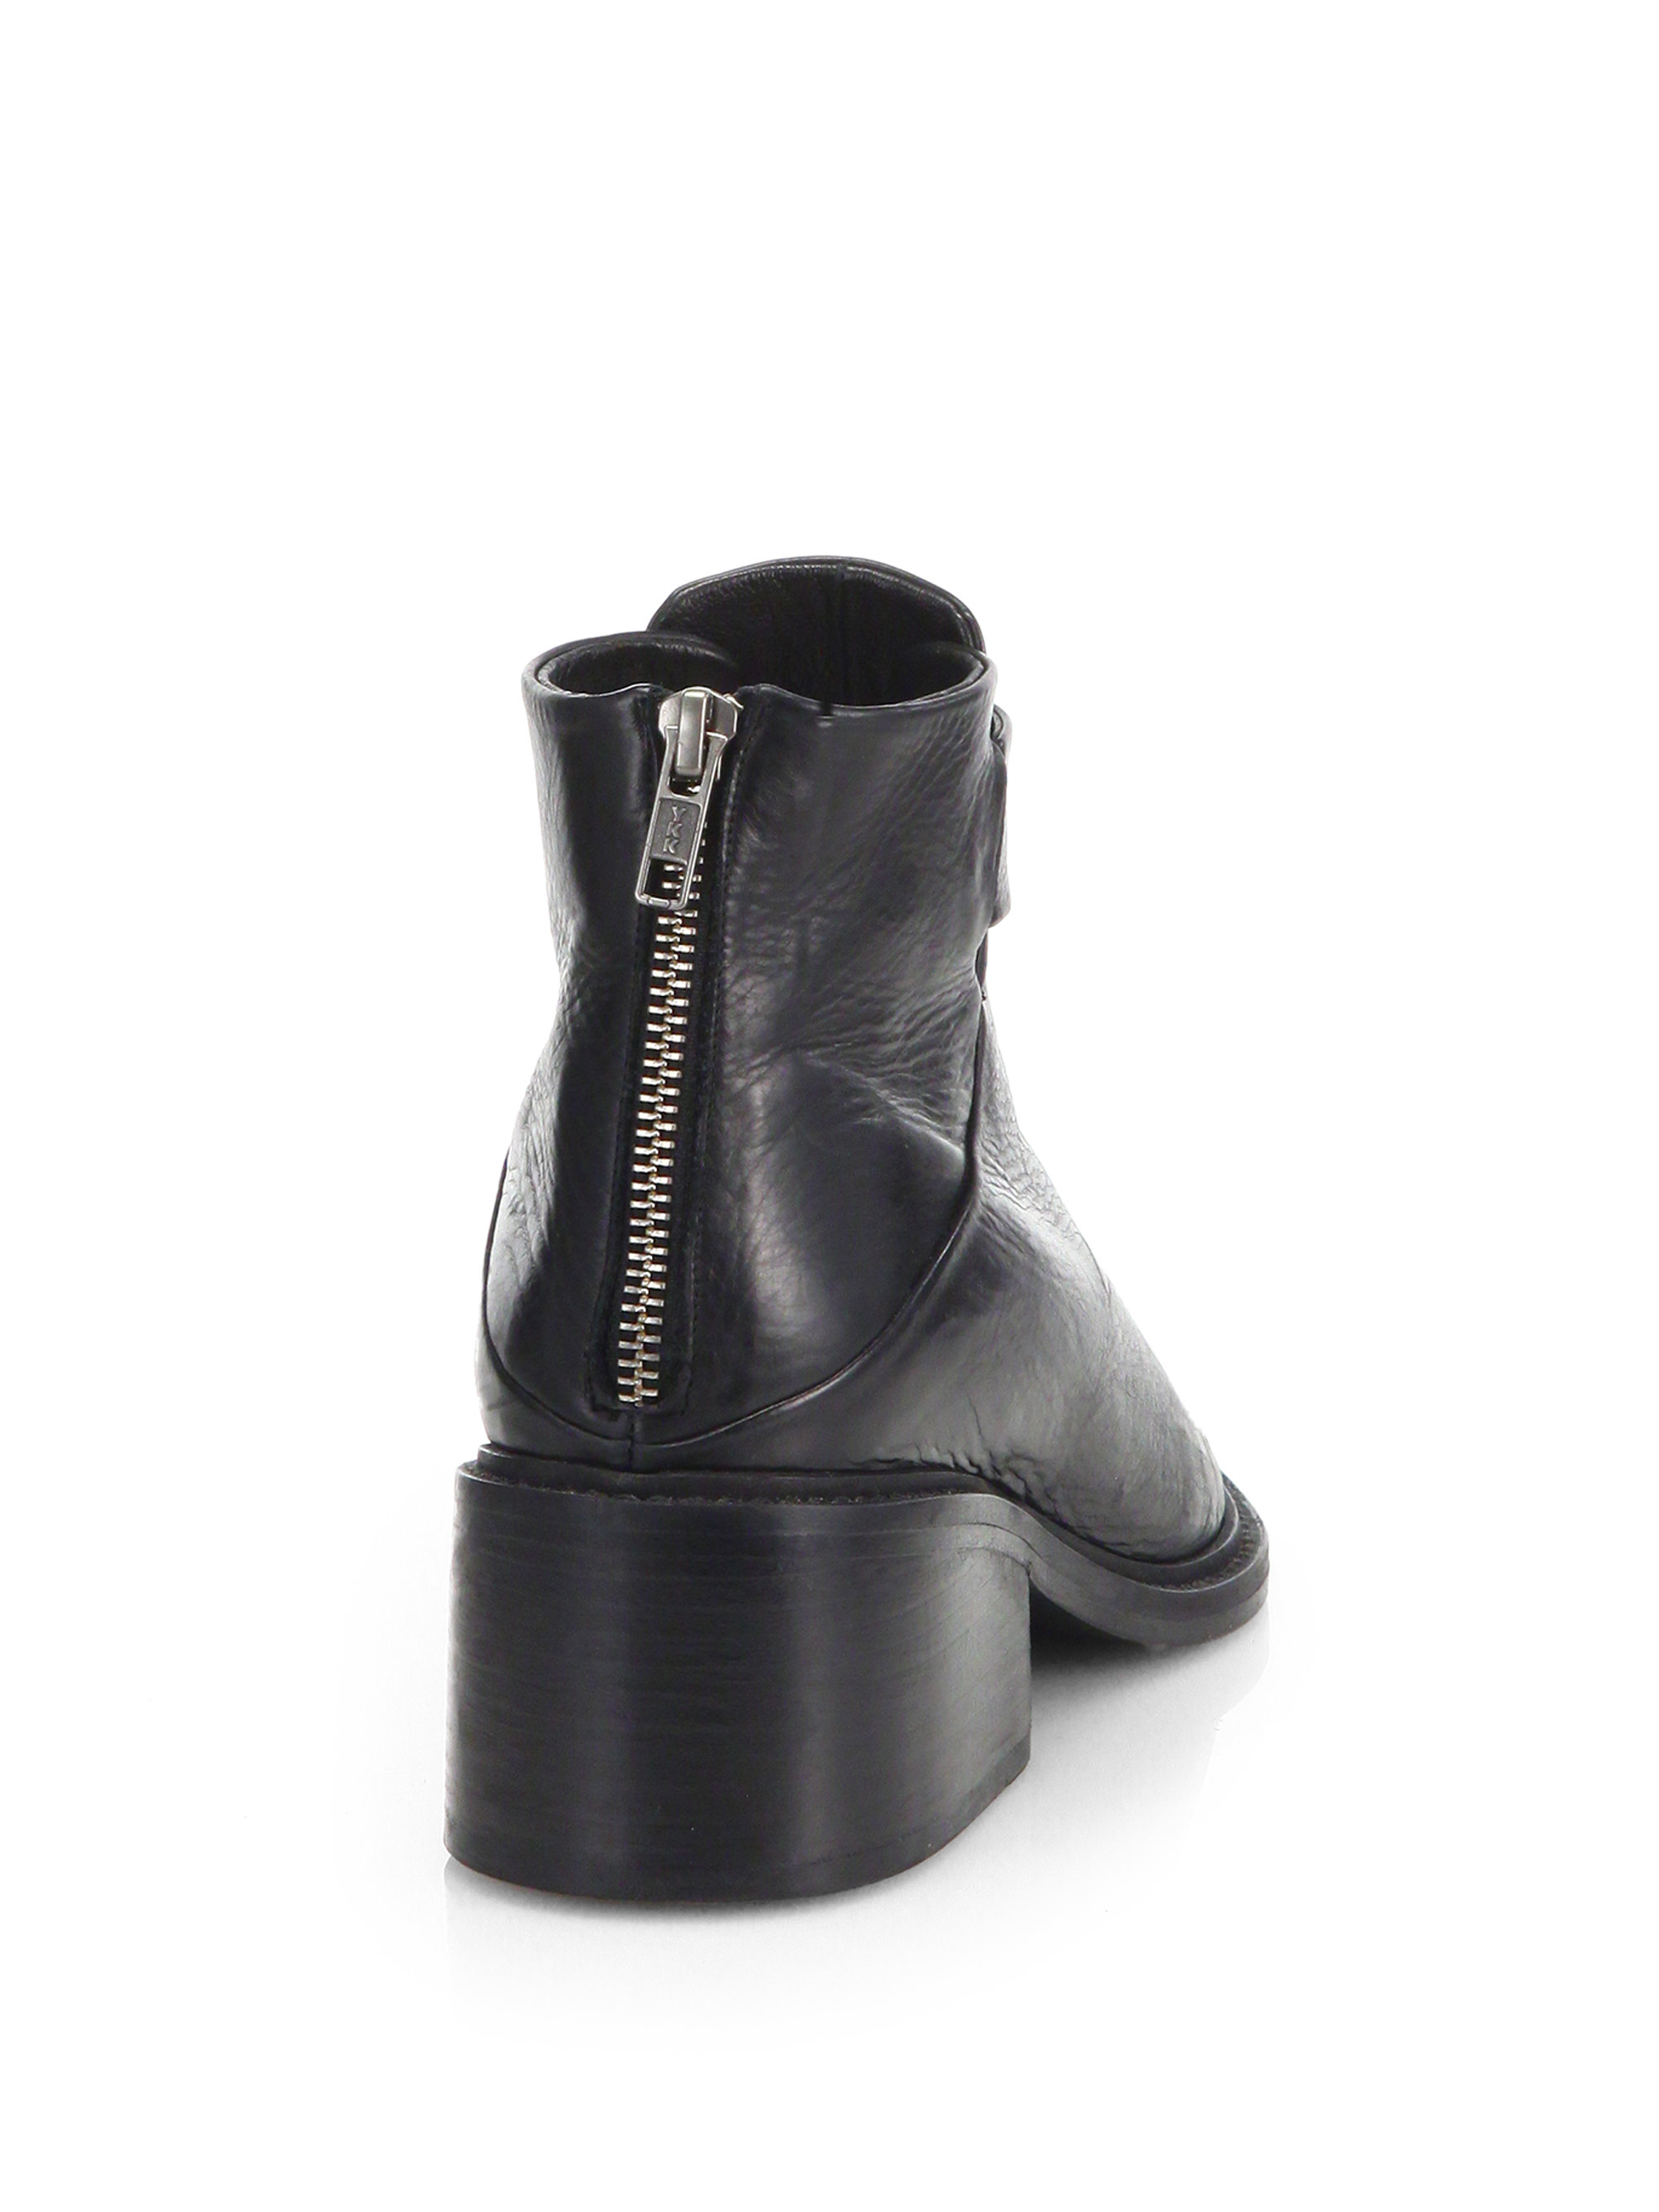 Envelope Back,Zip Leather Ankle Boots